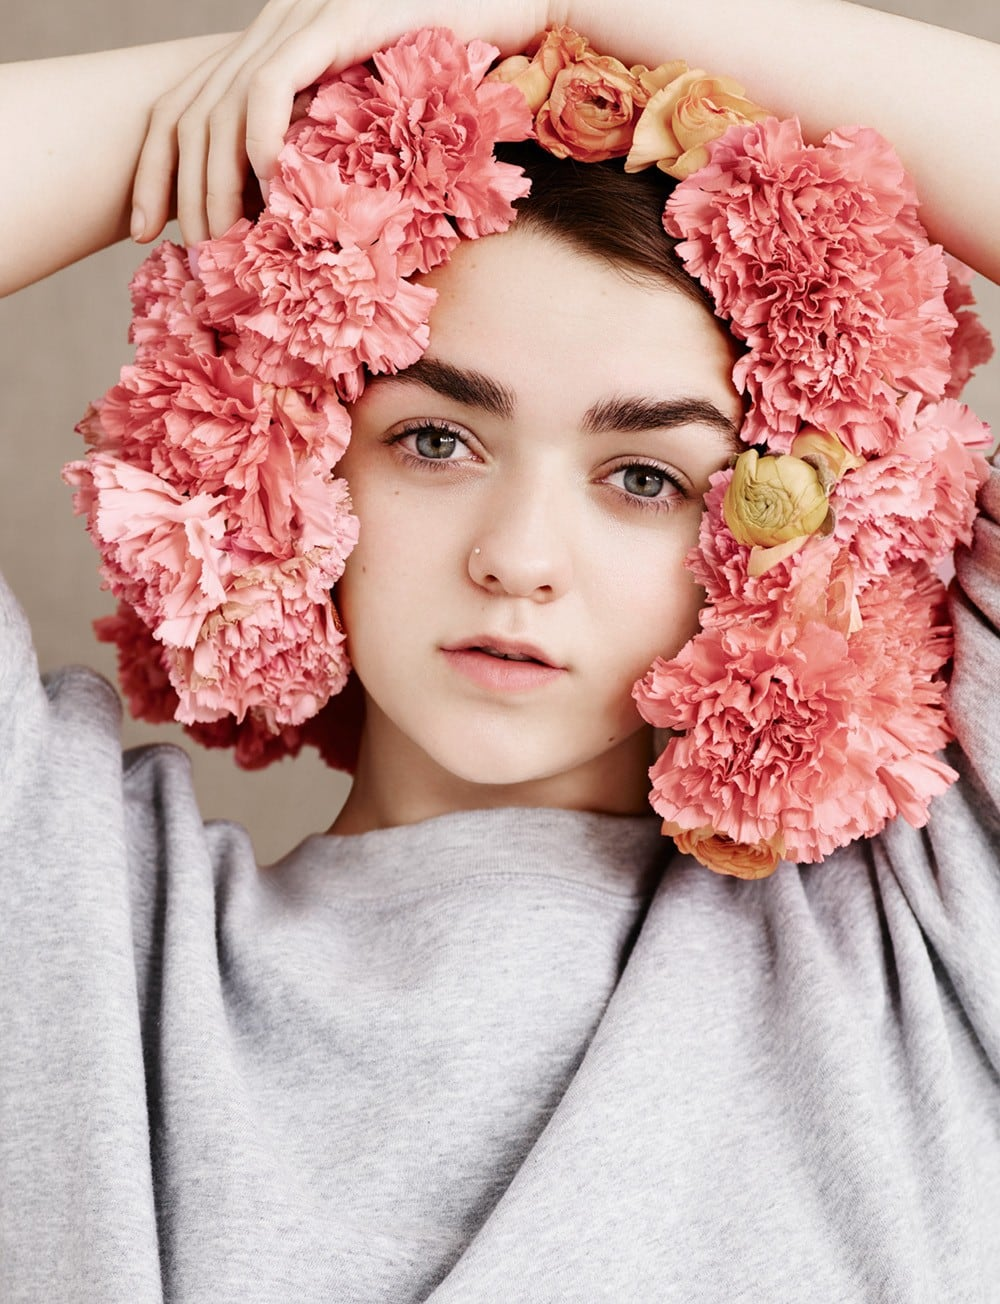 Maisie-Williams-Dazed-Confused-Magazine-2015-5